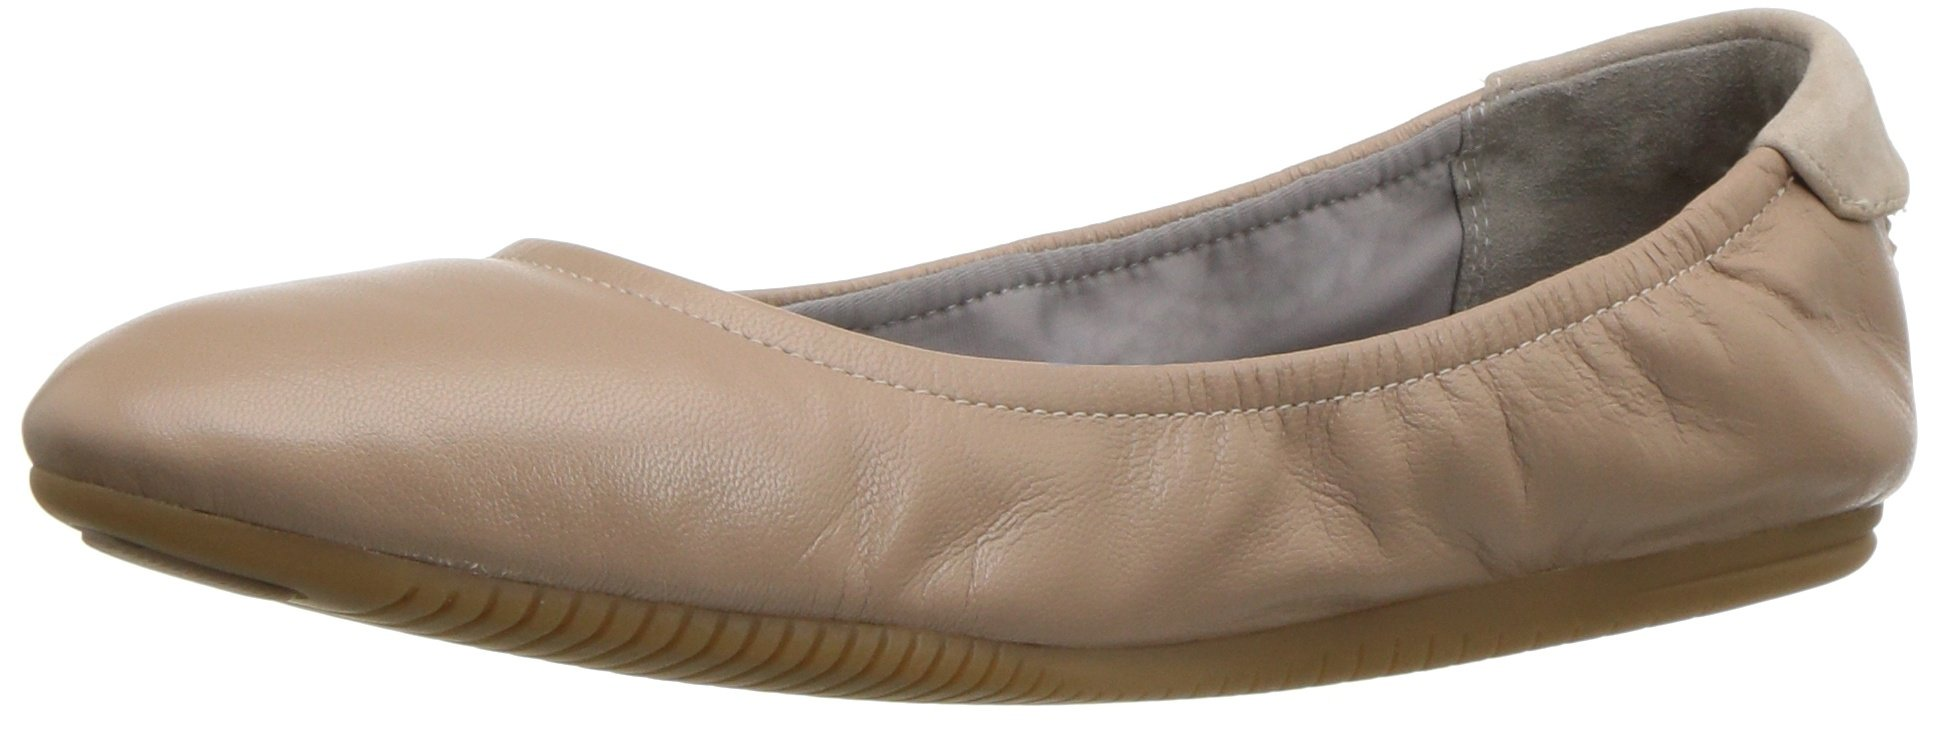 Cole Haan Studiogrand Convertible Ballet Flat,Maple Sugar Leather/Gum,6.5 B US by Cole Haan